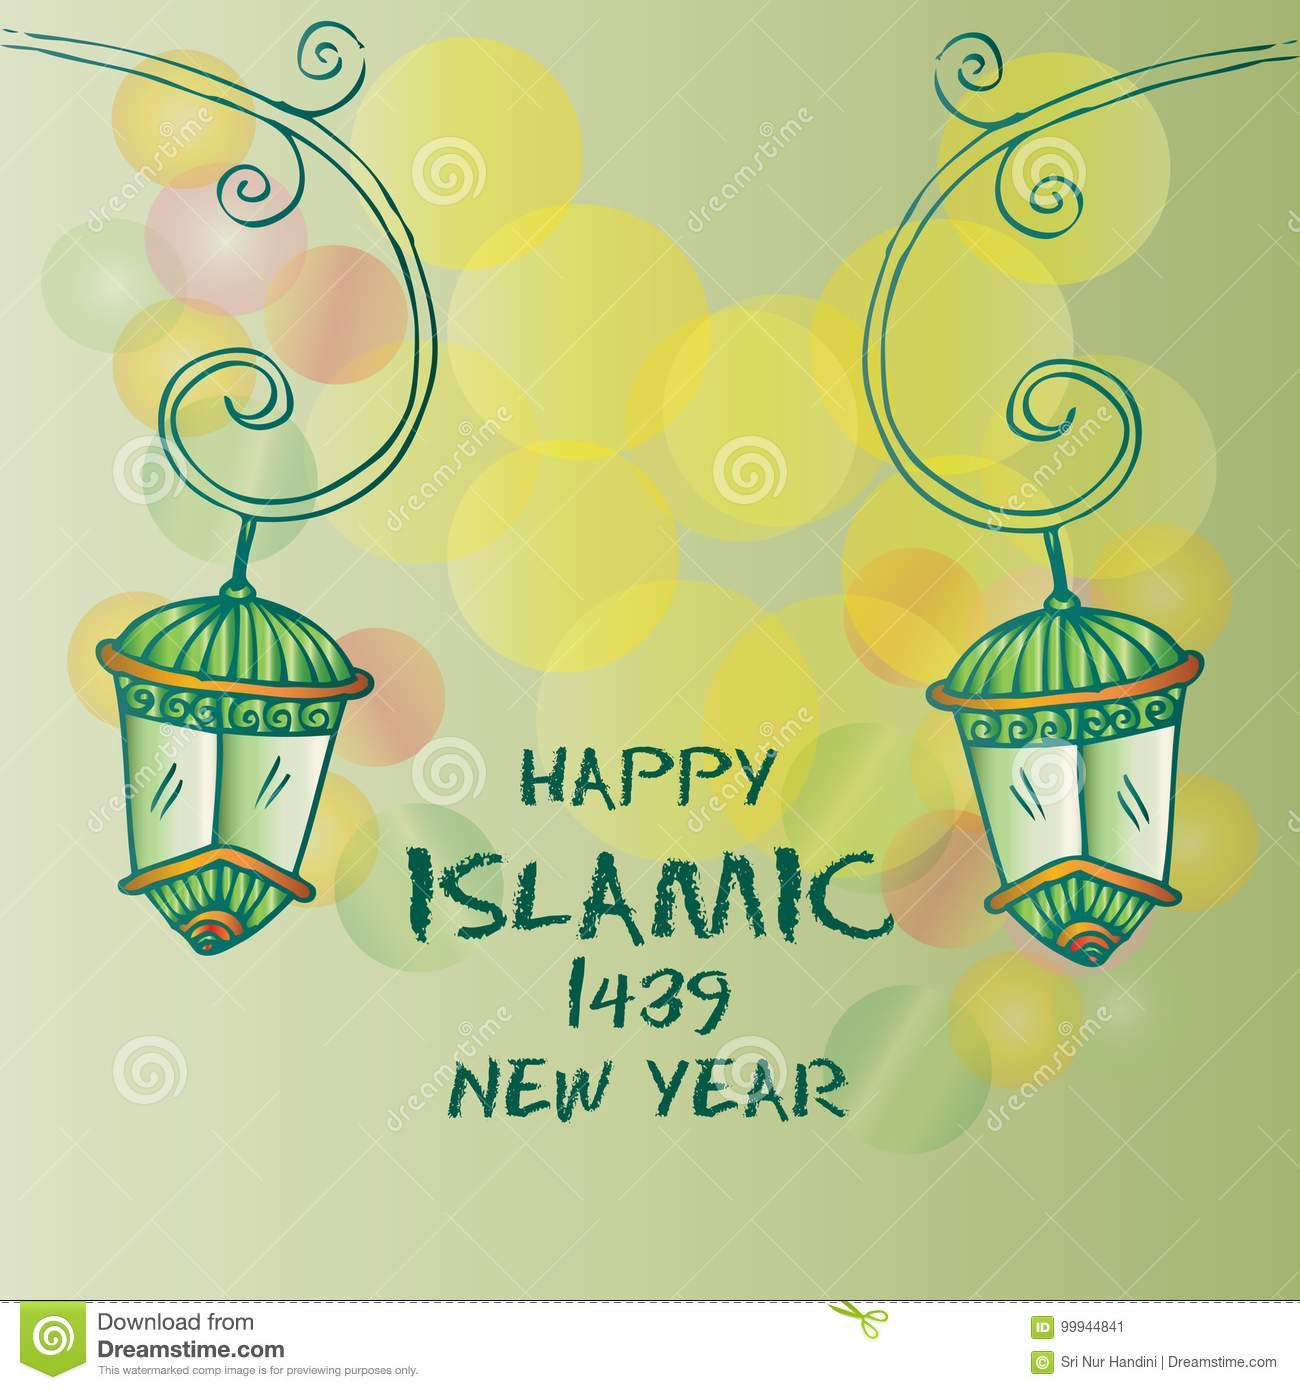 Happy Islamic New Year 1439 Stock Vector Illustration Of Business